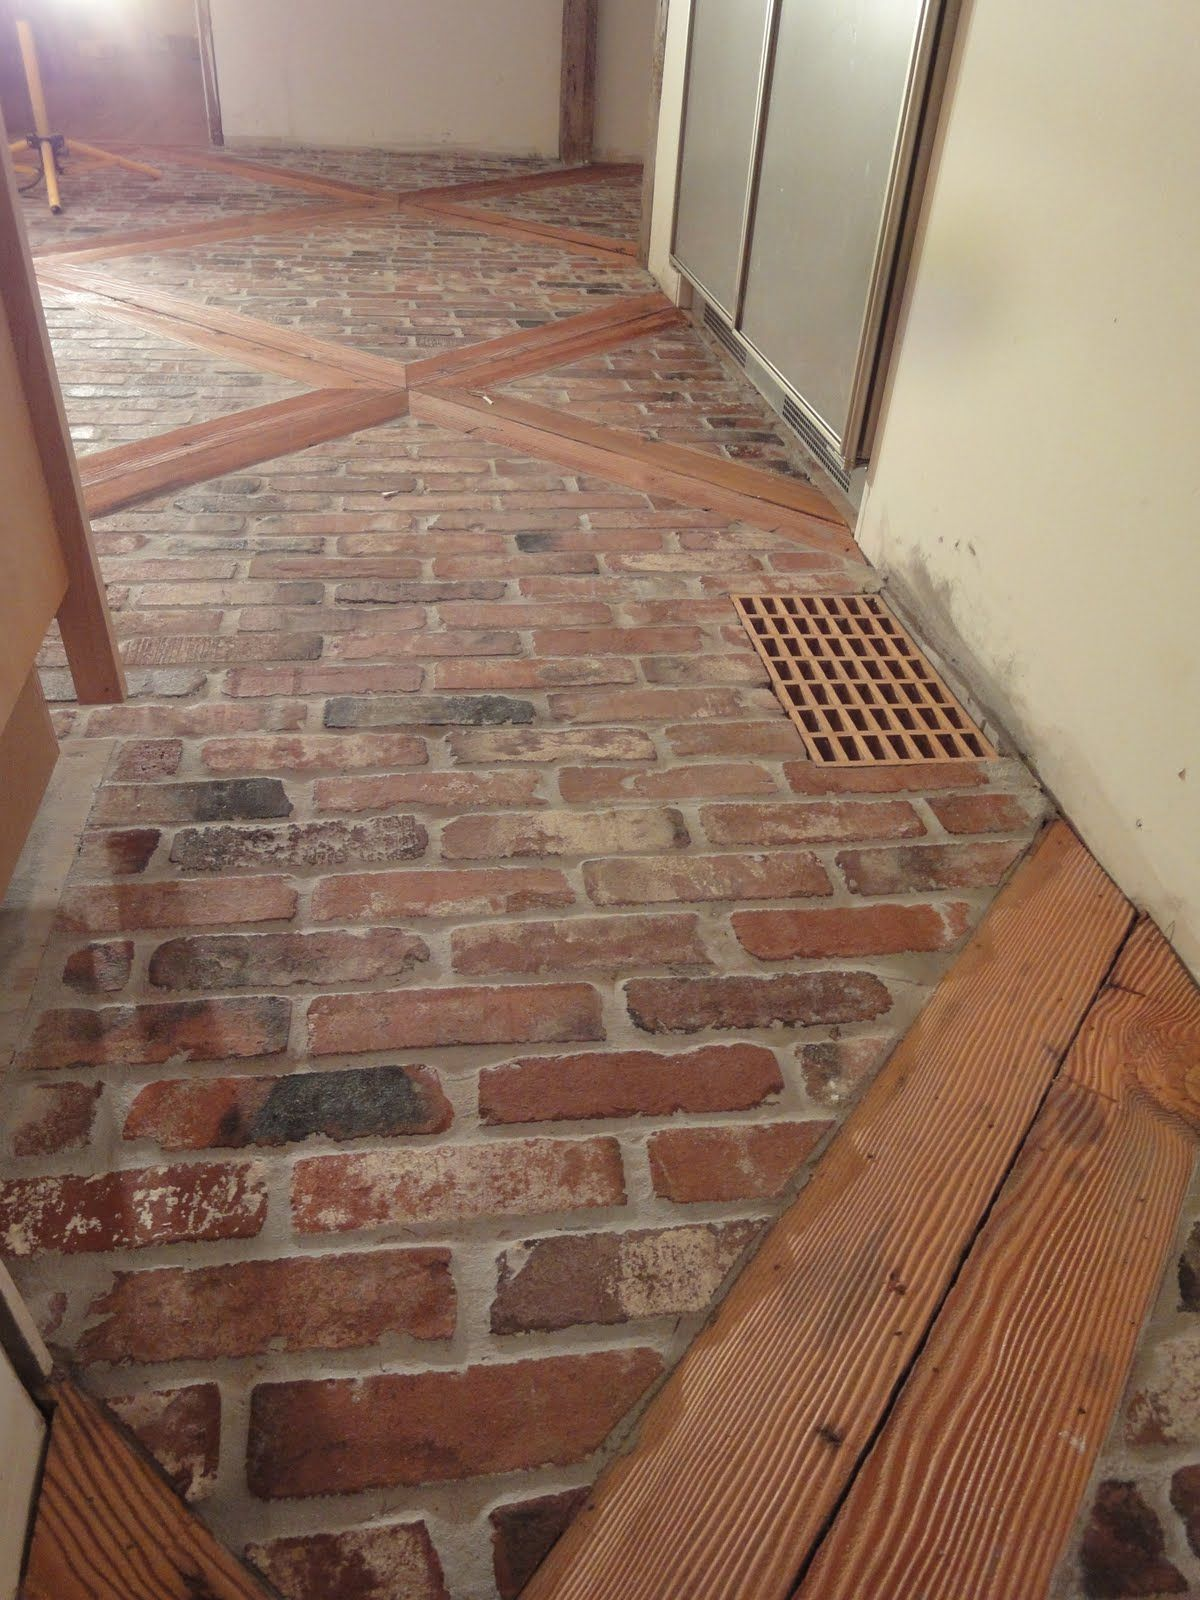 After 2 weeks and nearly 50 hours of work the kitchen floor is brick floor for hallway and mudroom with reclaimed wood crisscrossed throughout the brick 1900 farmhouse kitchen flooricks and wood great design dailygadgetfo Images